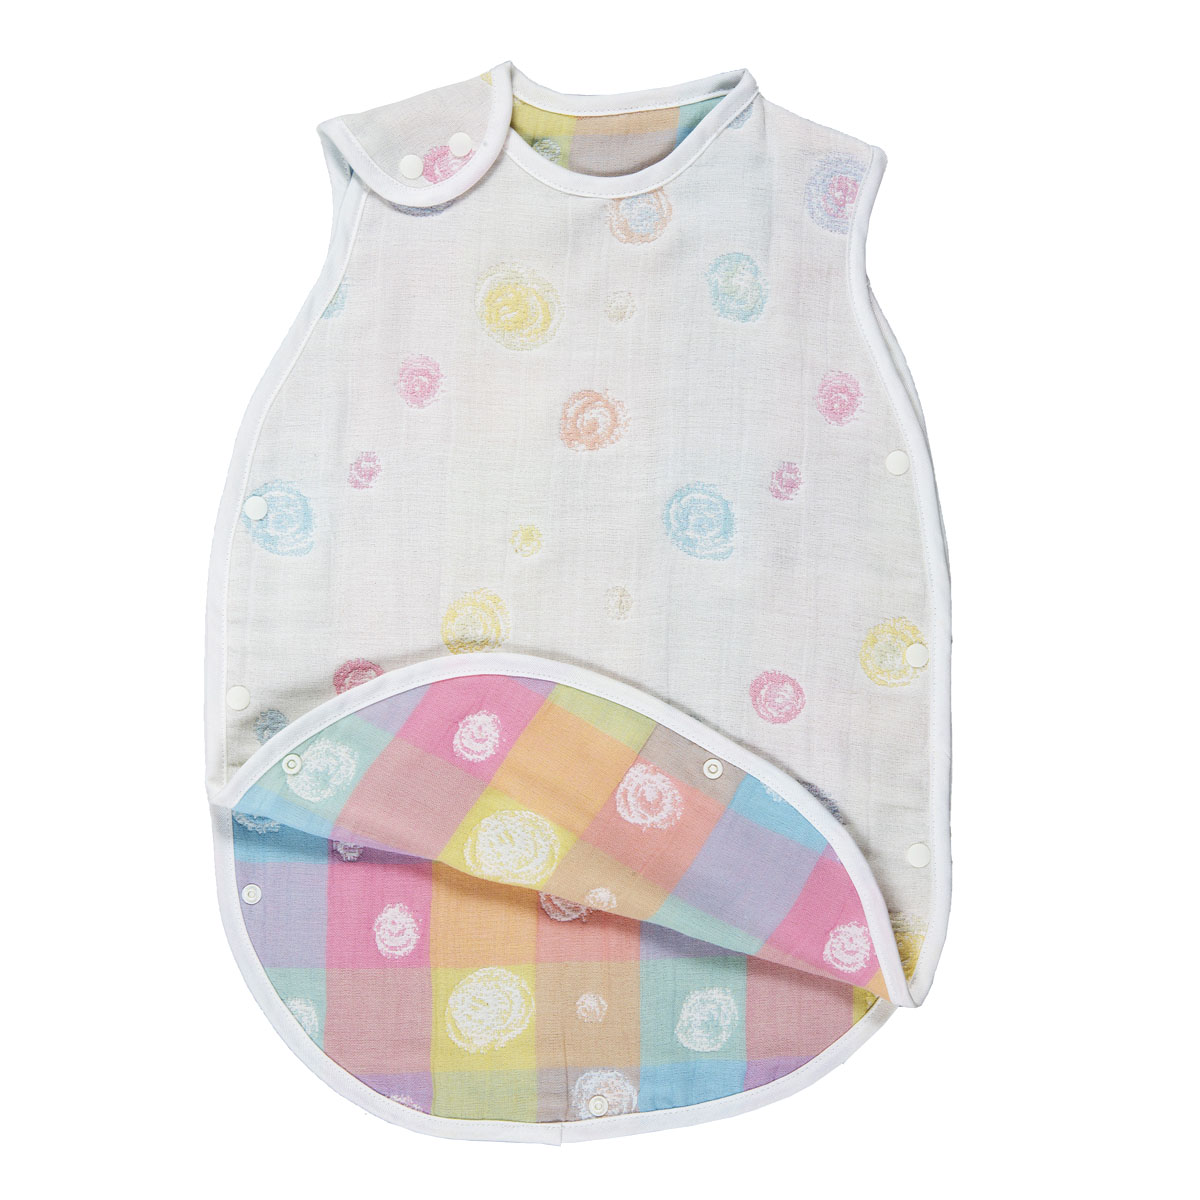 Fujiki cotton 100% gauze made in six folds of gauze sleeper (kids - youth)  dots colorful Japan